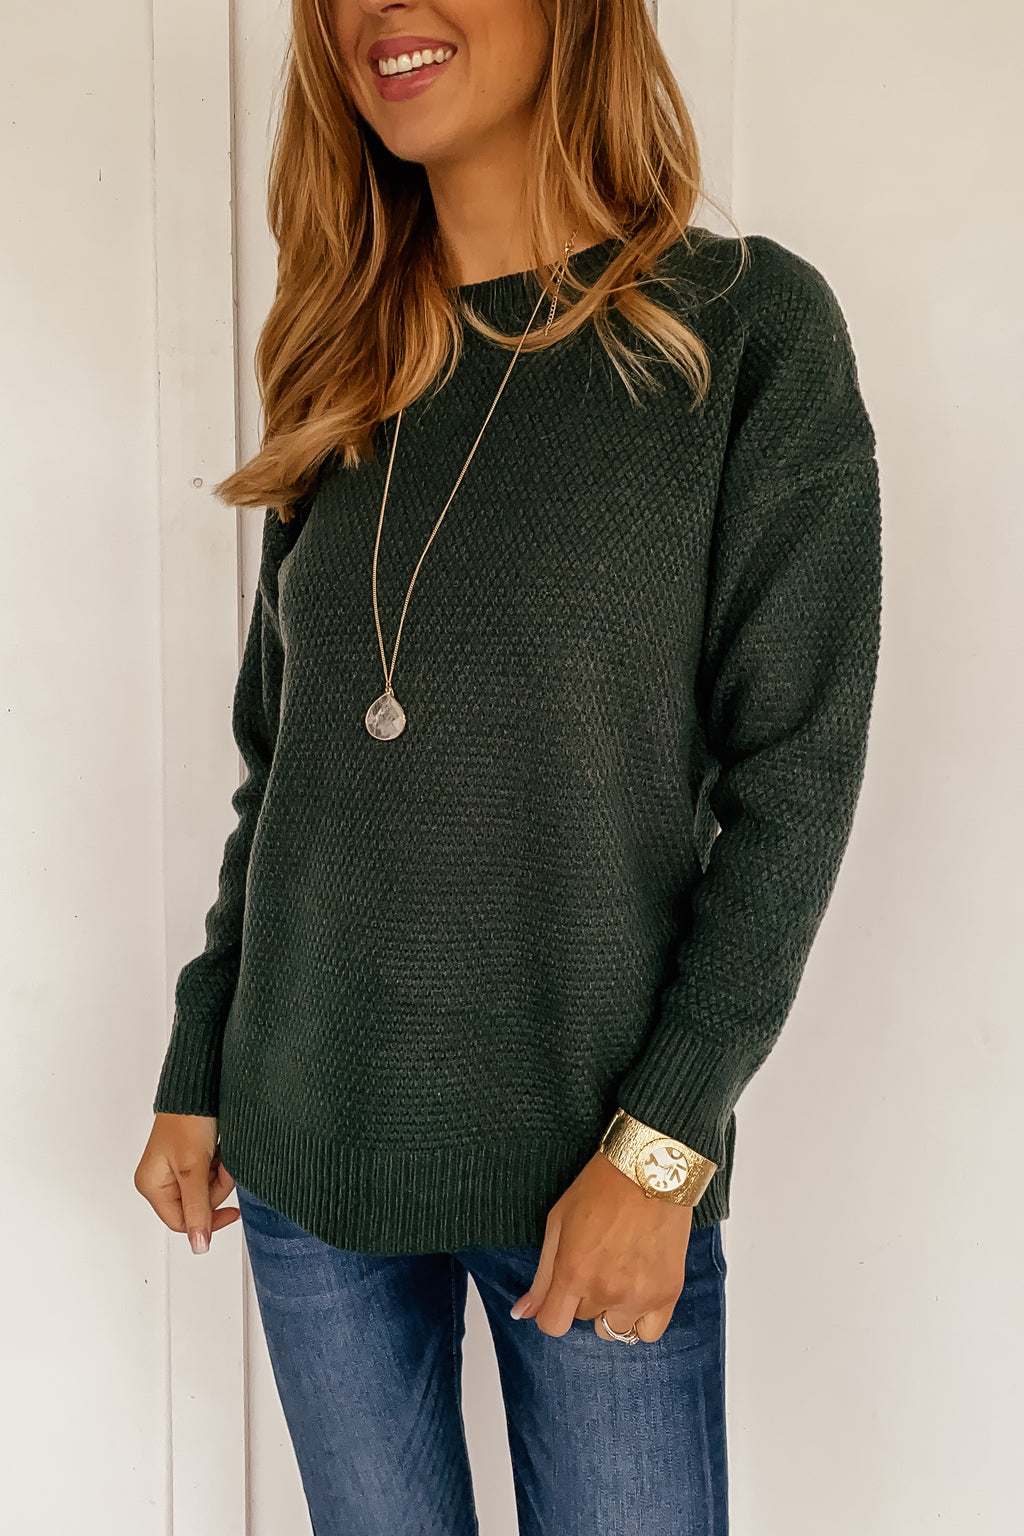 The Simple Shelby Sweater in Hunter Green